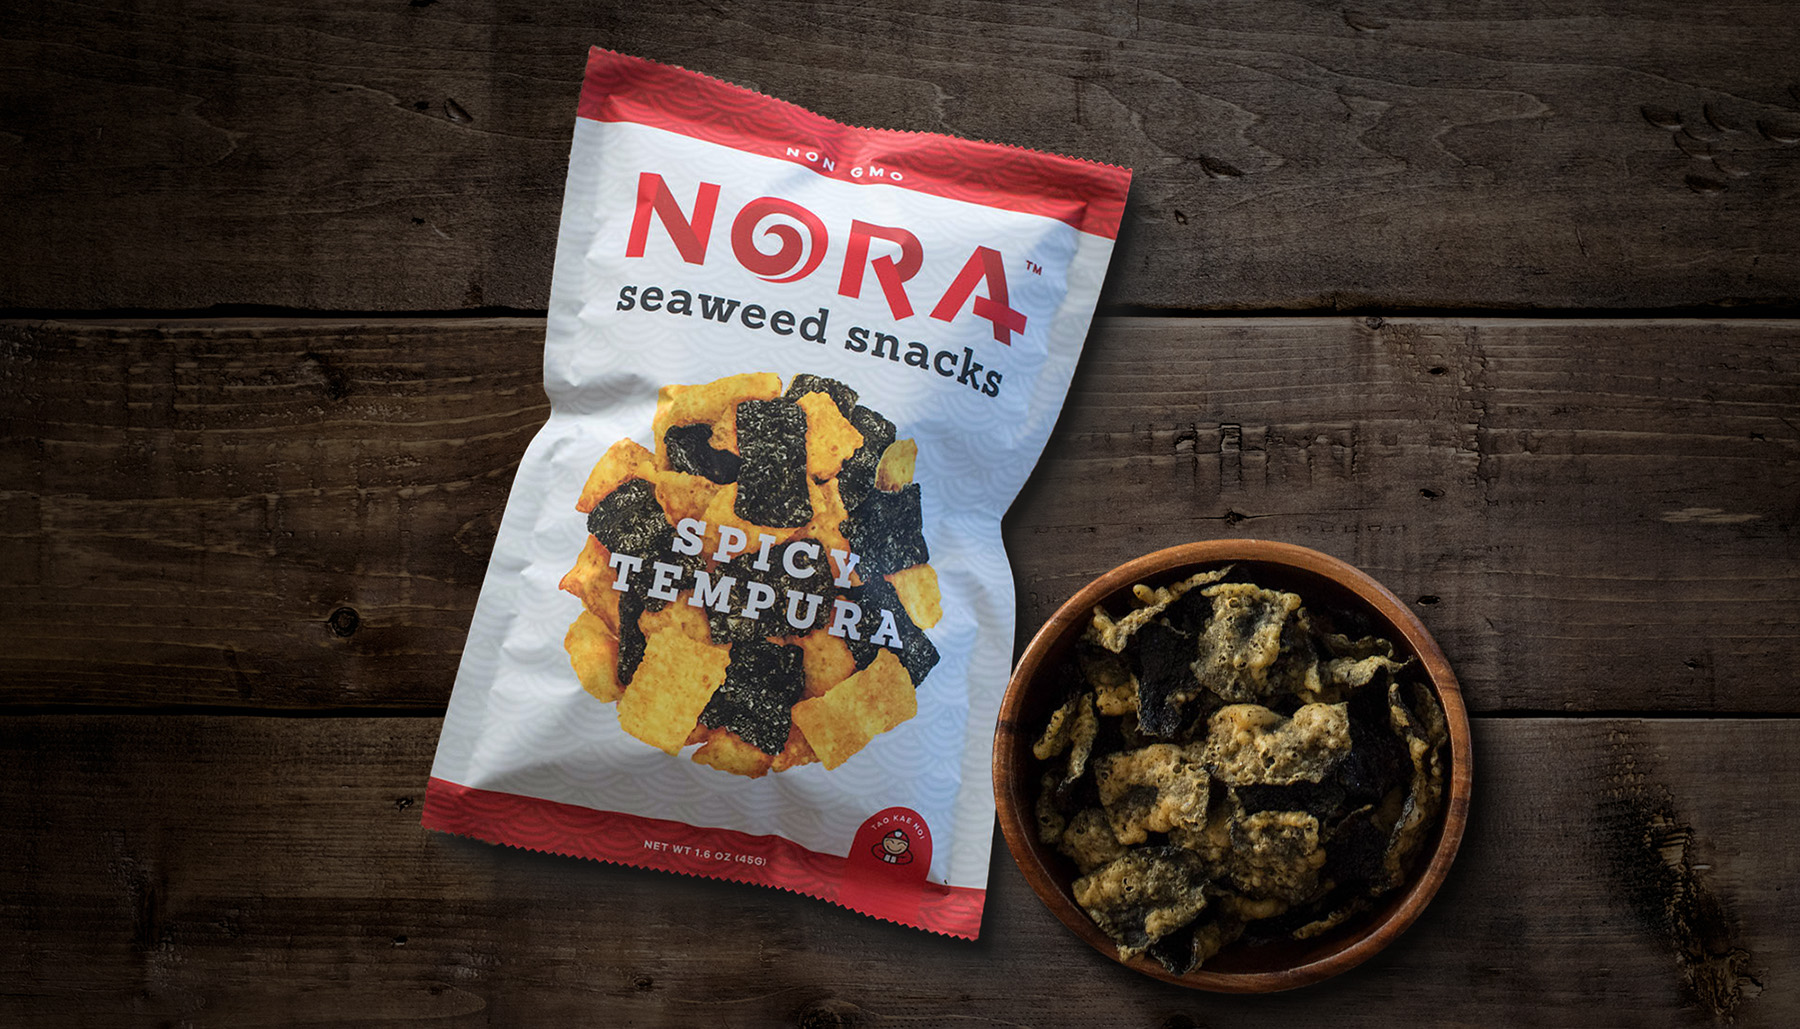 Nora Seaweed Snacks Packaging